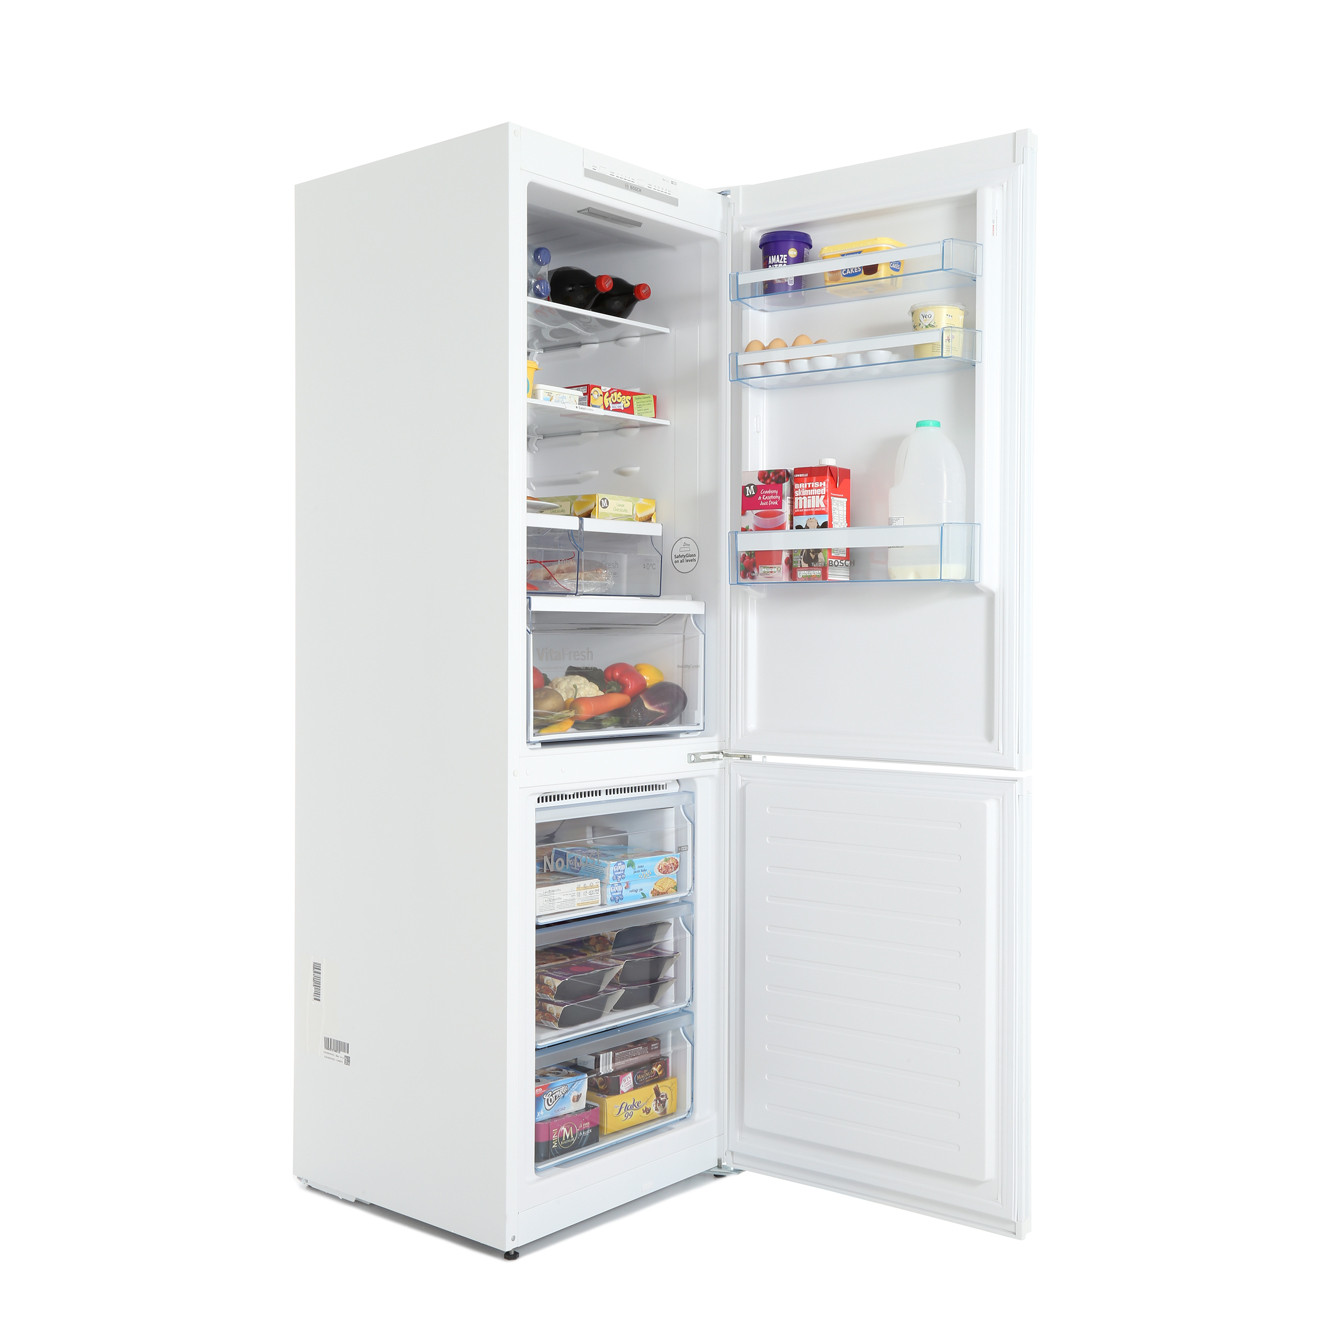 Bosch Serie 4 KGN36VWEAG 324 Litre A++ Rated White Fridge Freezer